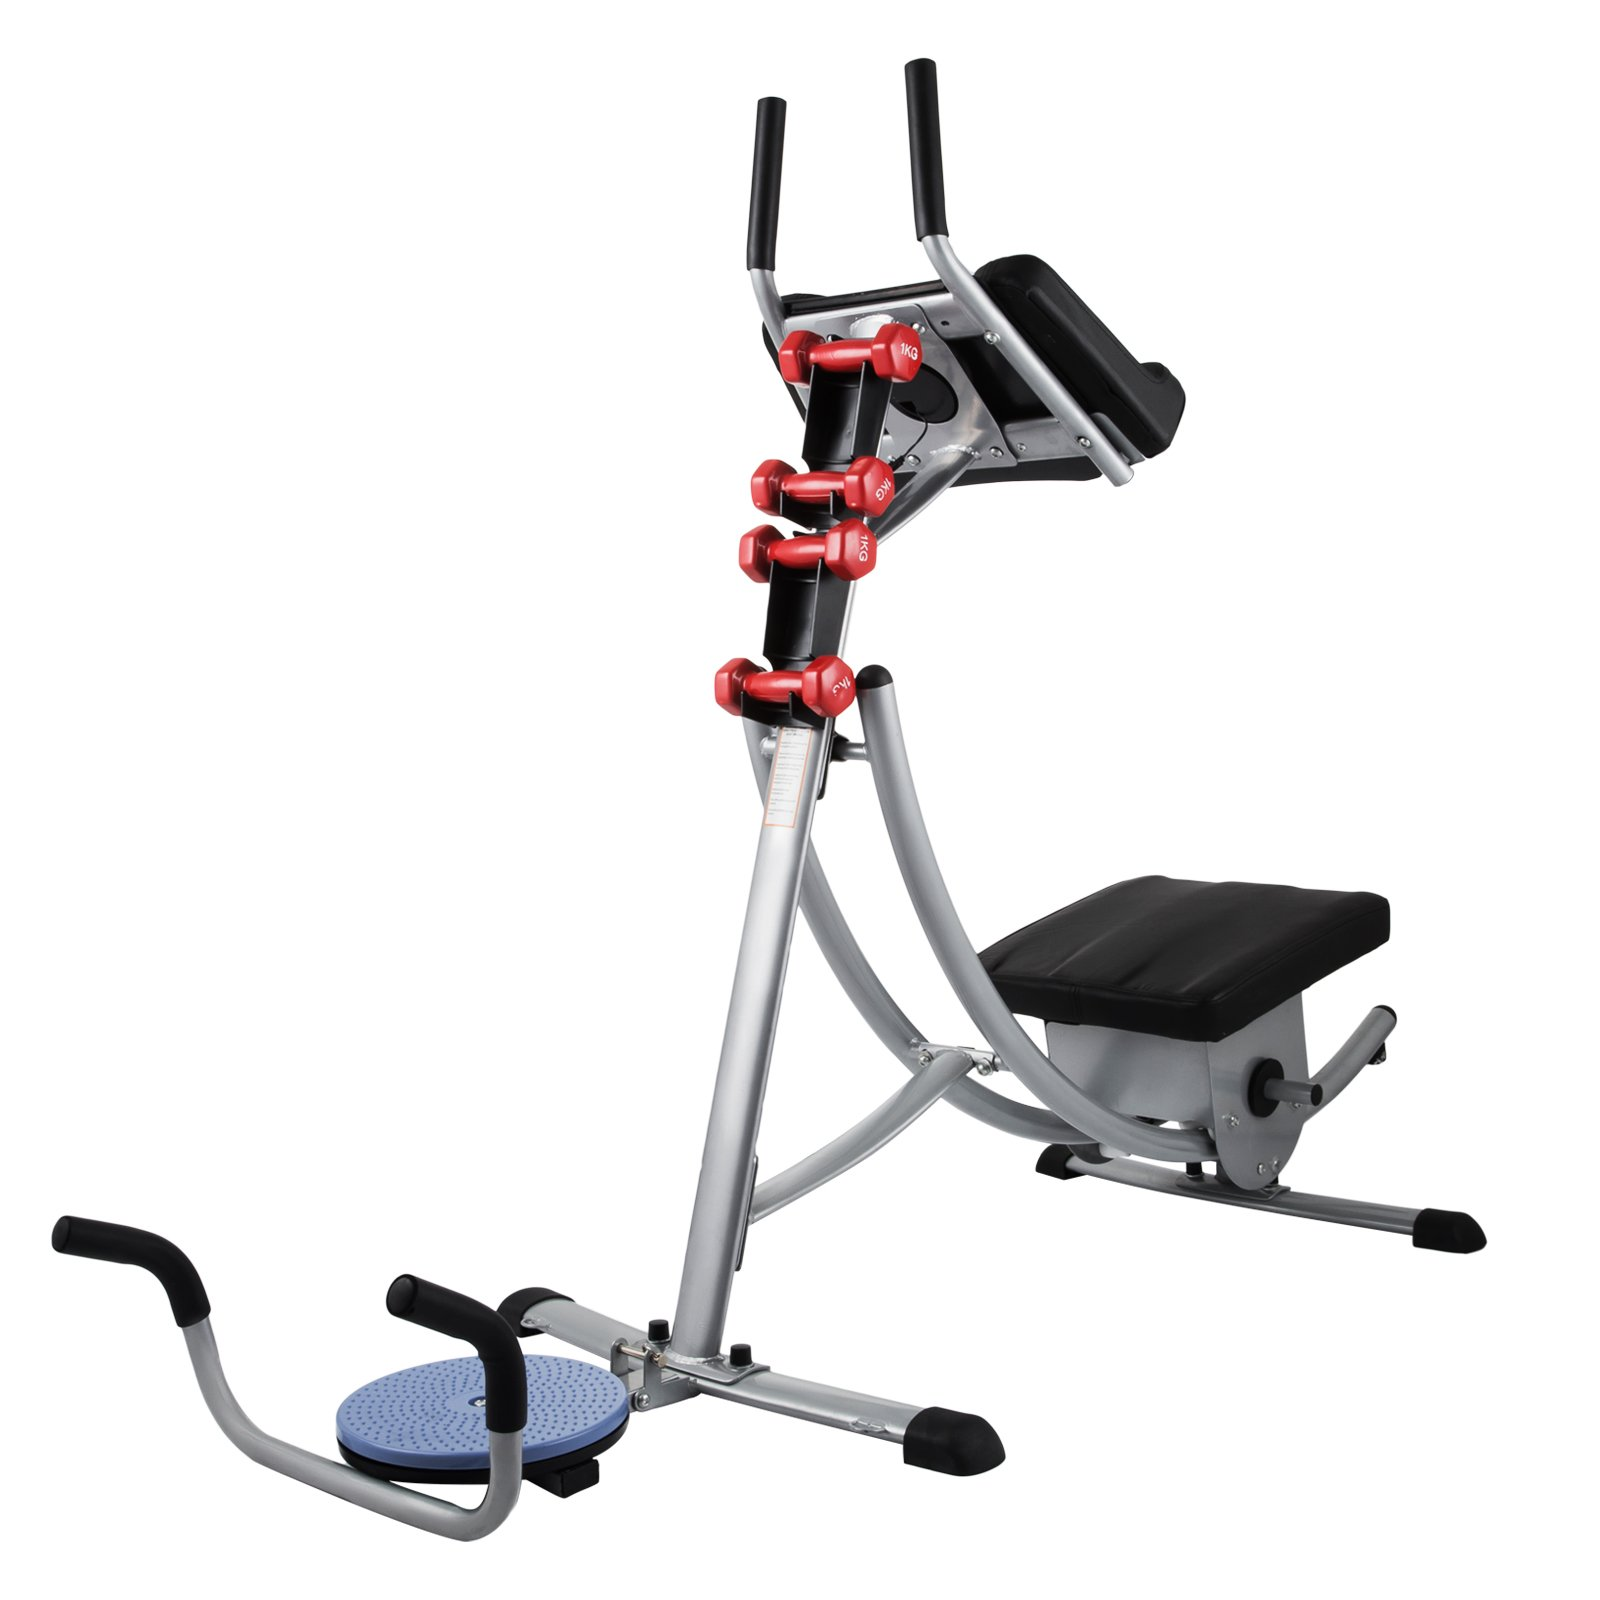 Popsport Abdomen Machine 330LBS Abdominal Coaster Abdomen Exercise Equipment with Adjustable Seat for Abdominal Muscle Training (Ab Coaster with 4 Dumbbells and wriggled Plate)